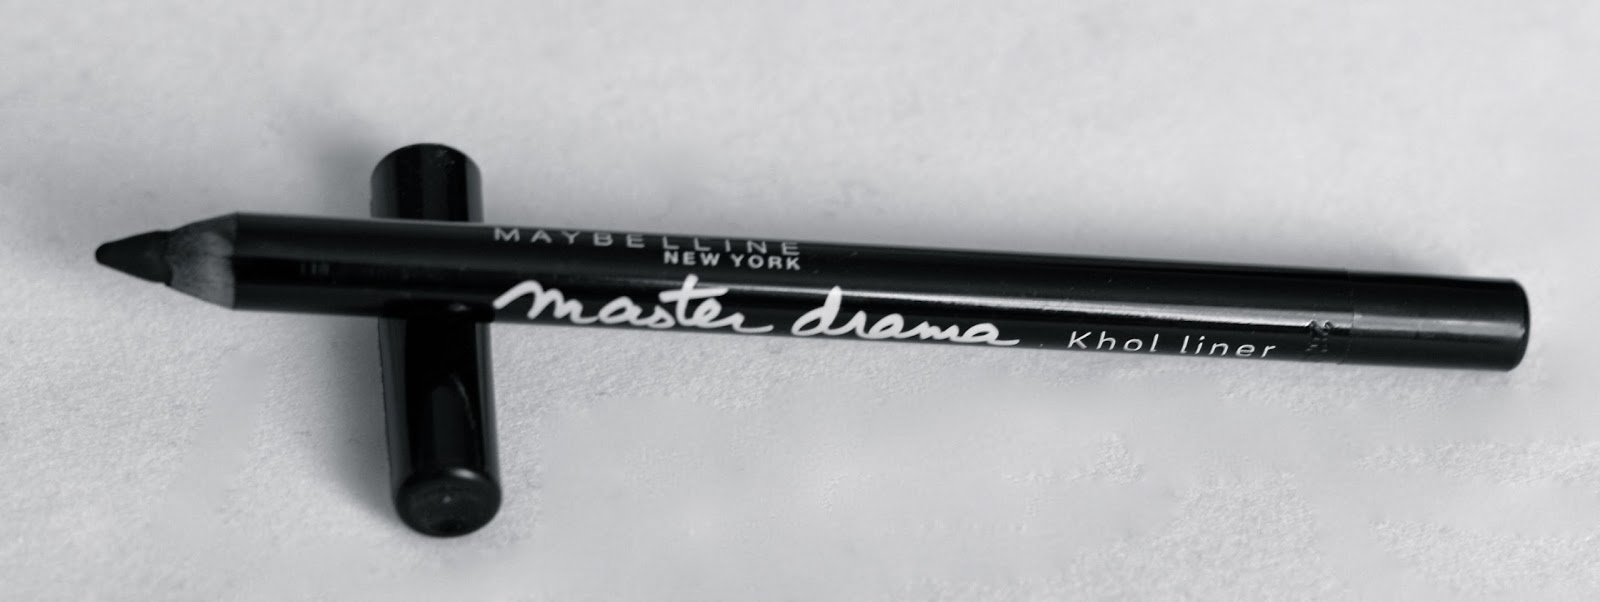 Top eye pencil: Maybelline Master Drama Khol liner